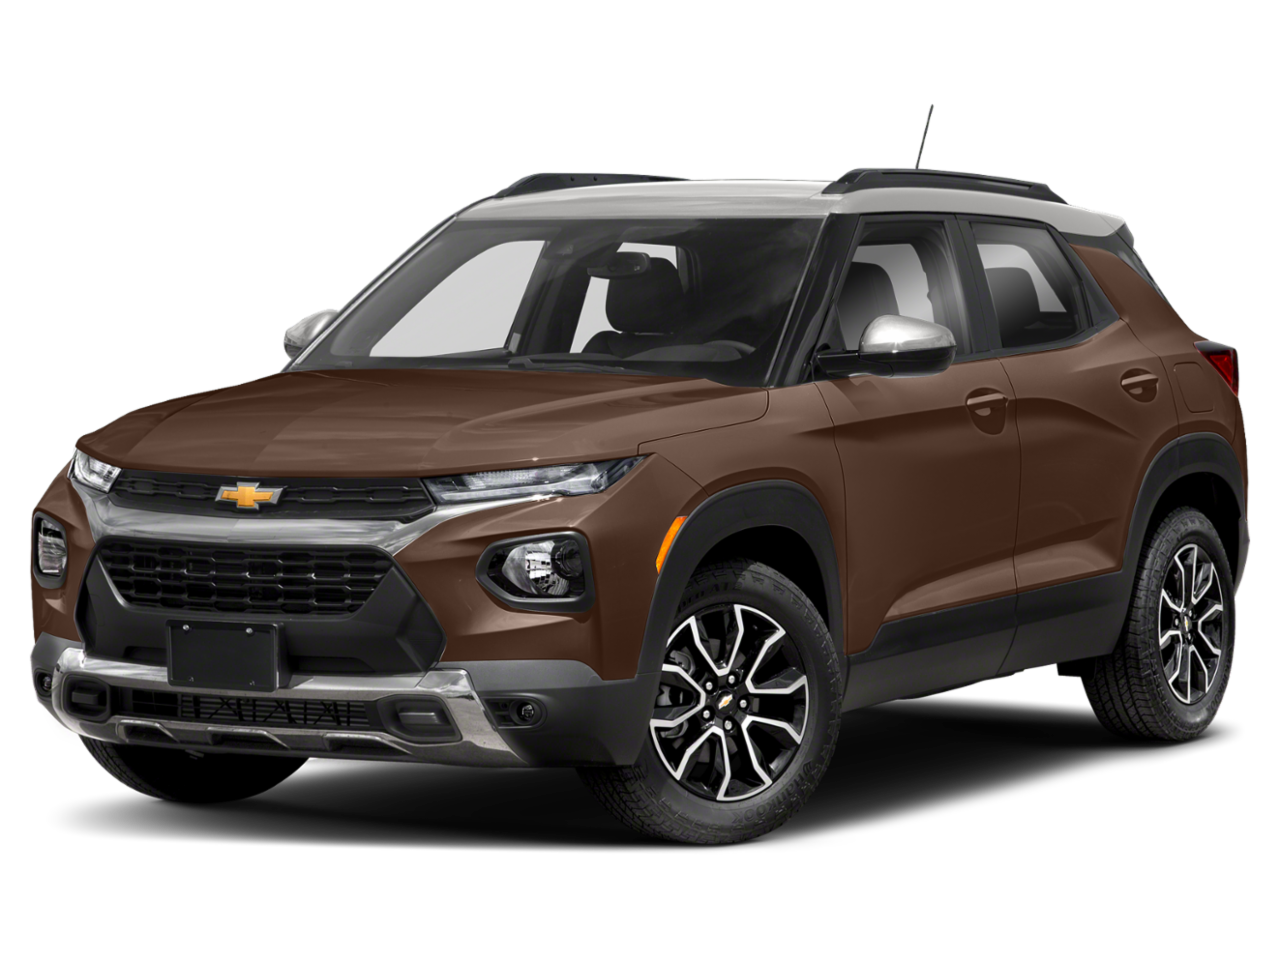 Chevrolet 2021 Trailblazer ACTIV